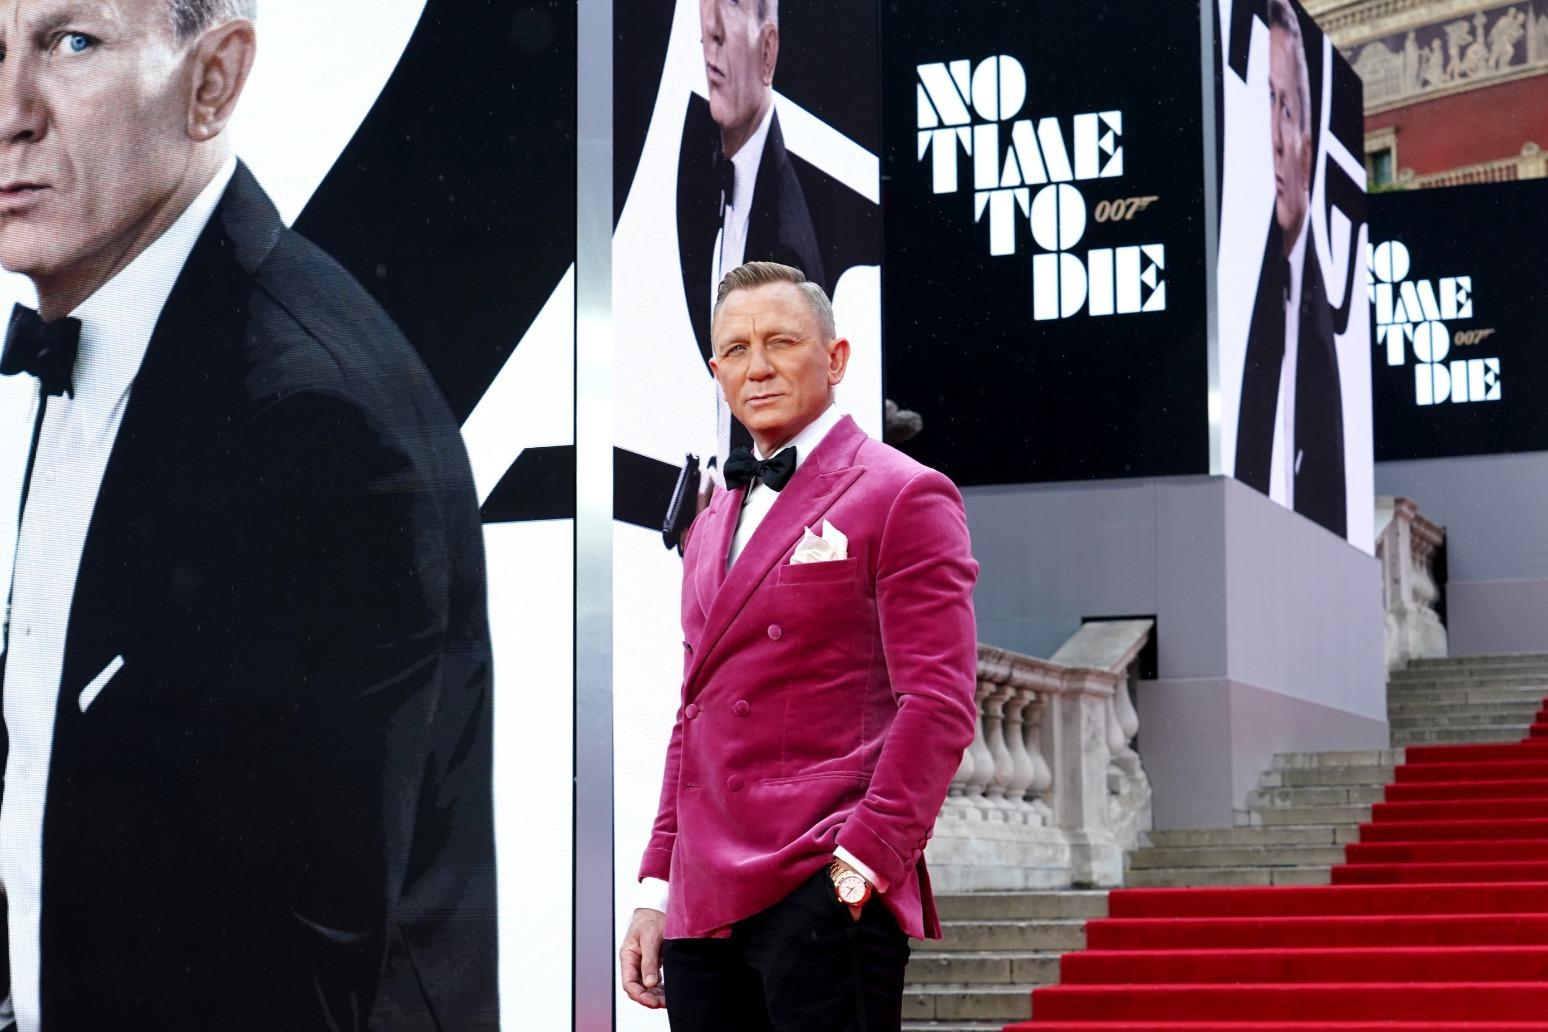 Review round-up: Scores are in for Daniel Craig's Bond swansong No Time To Die